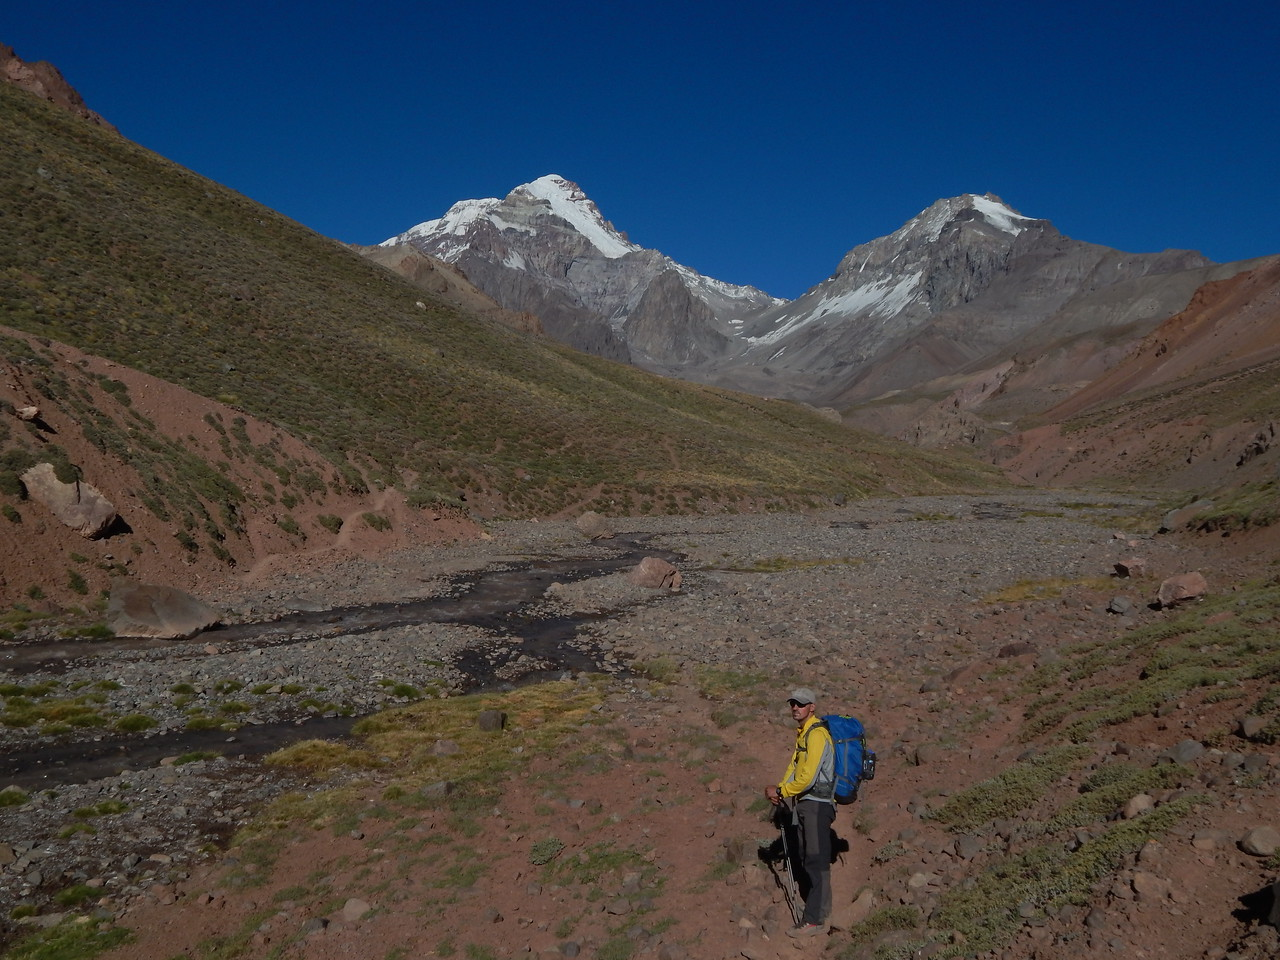 Day 3 heading to Base Camp